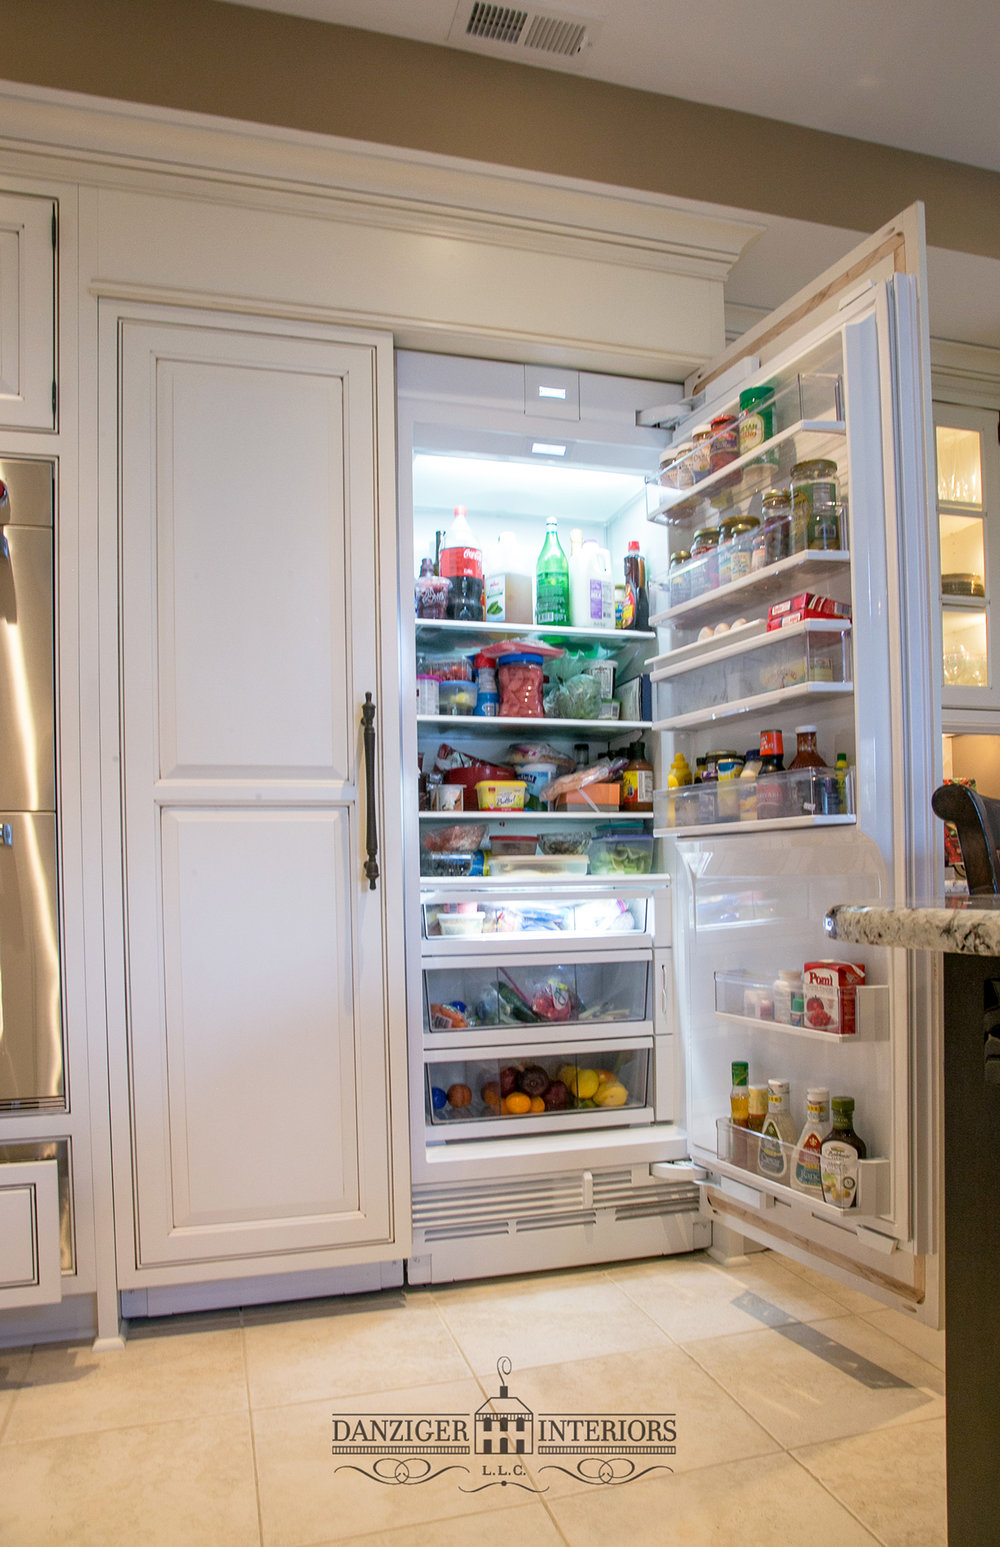 Open Refrigerator / Freezer left side